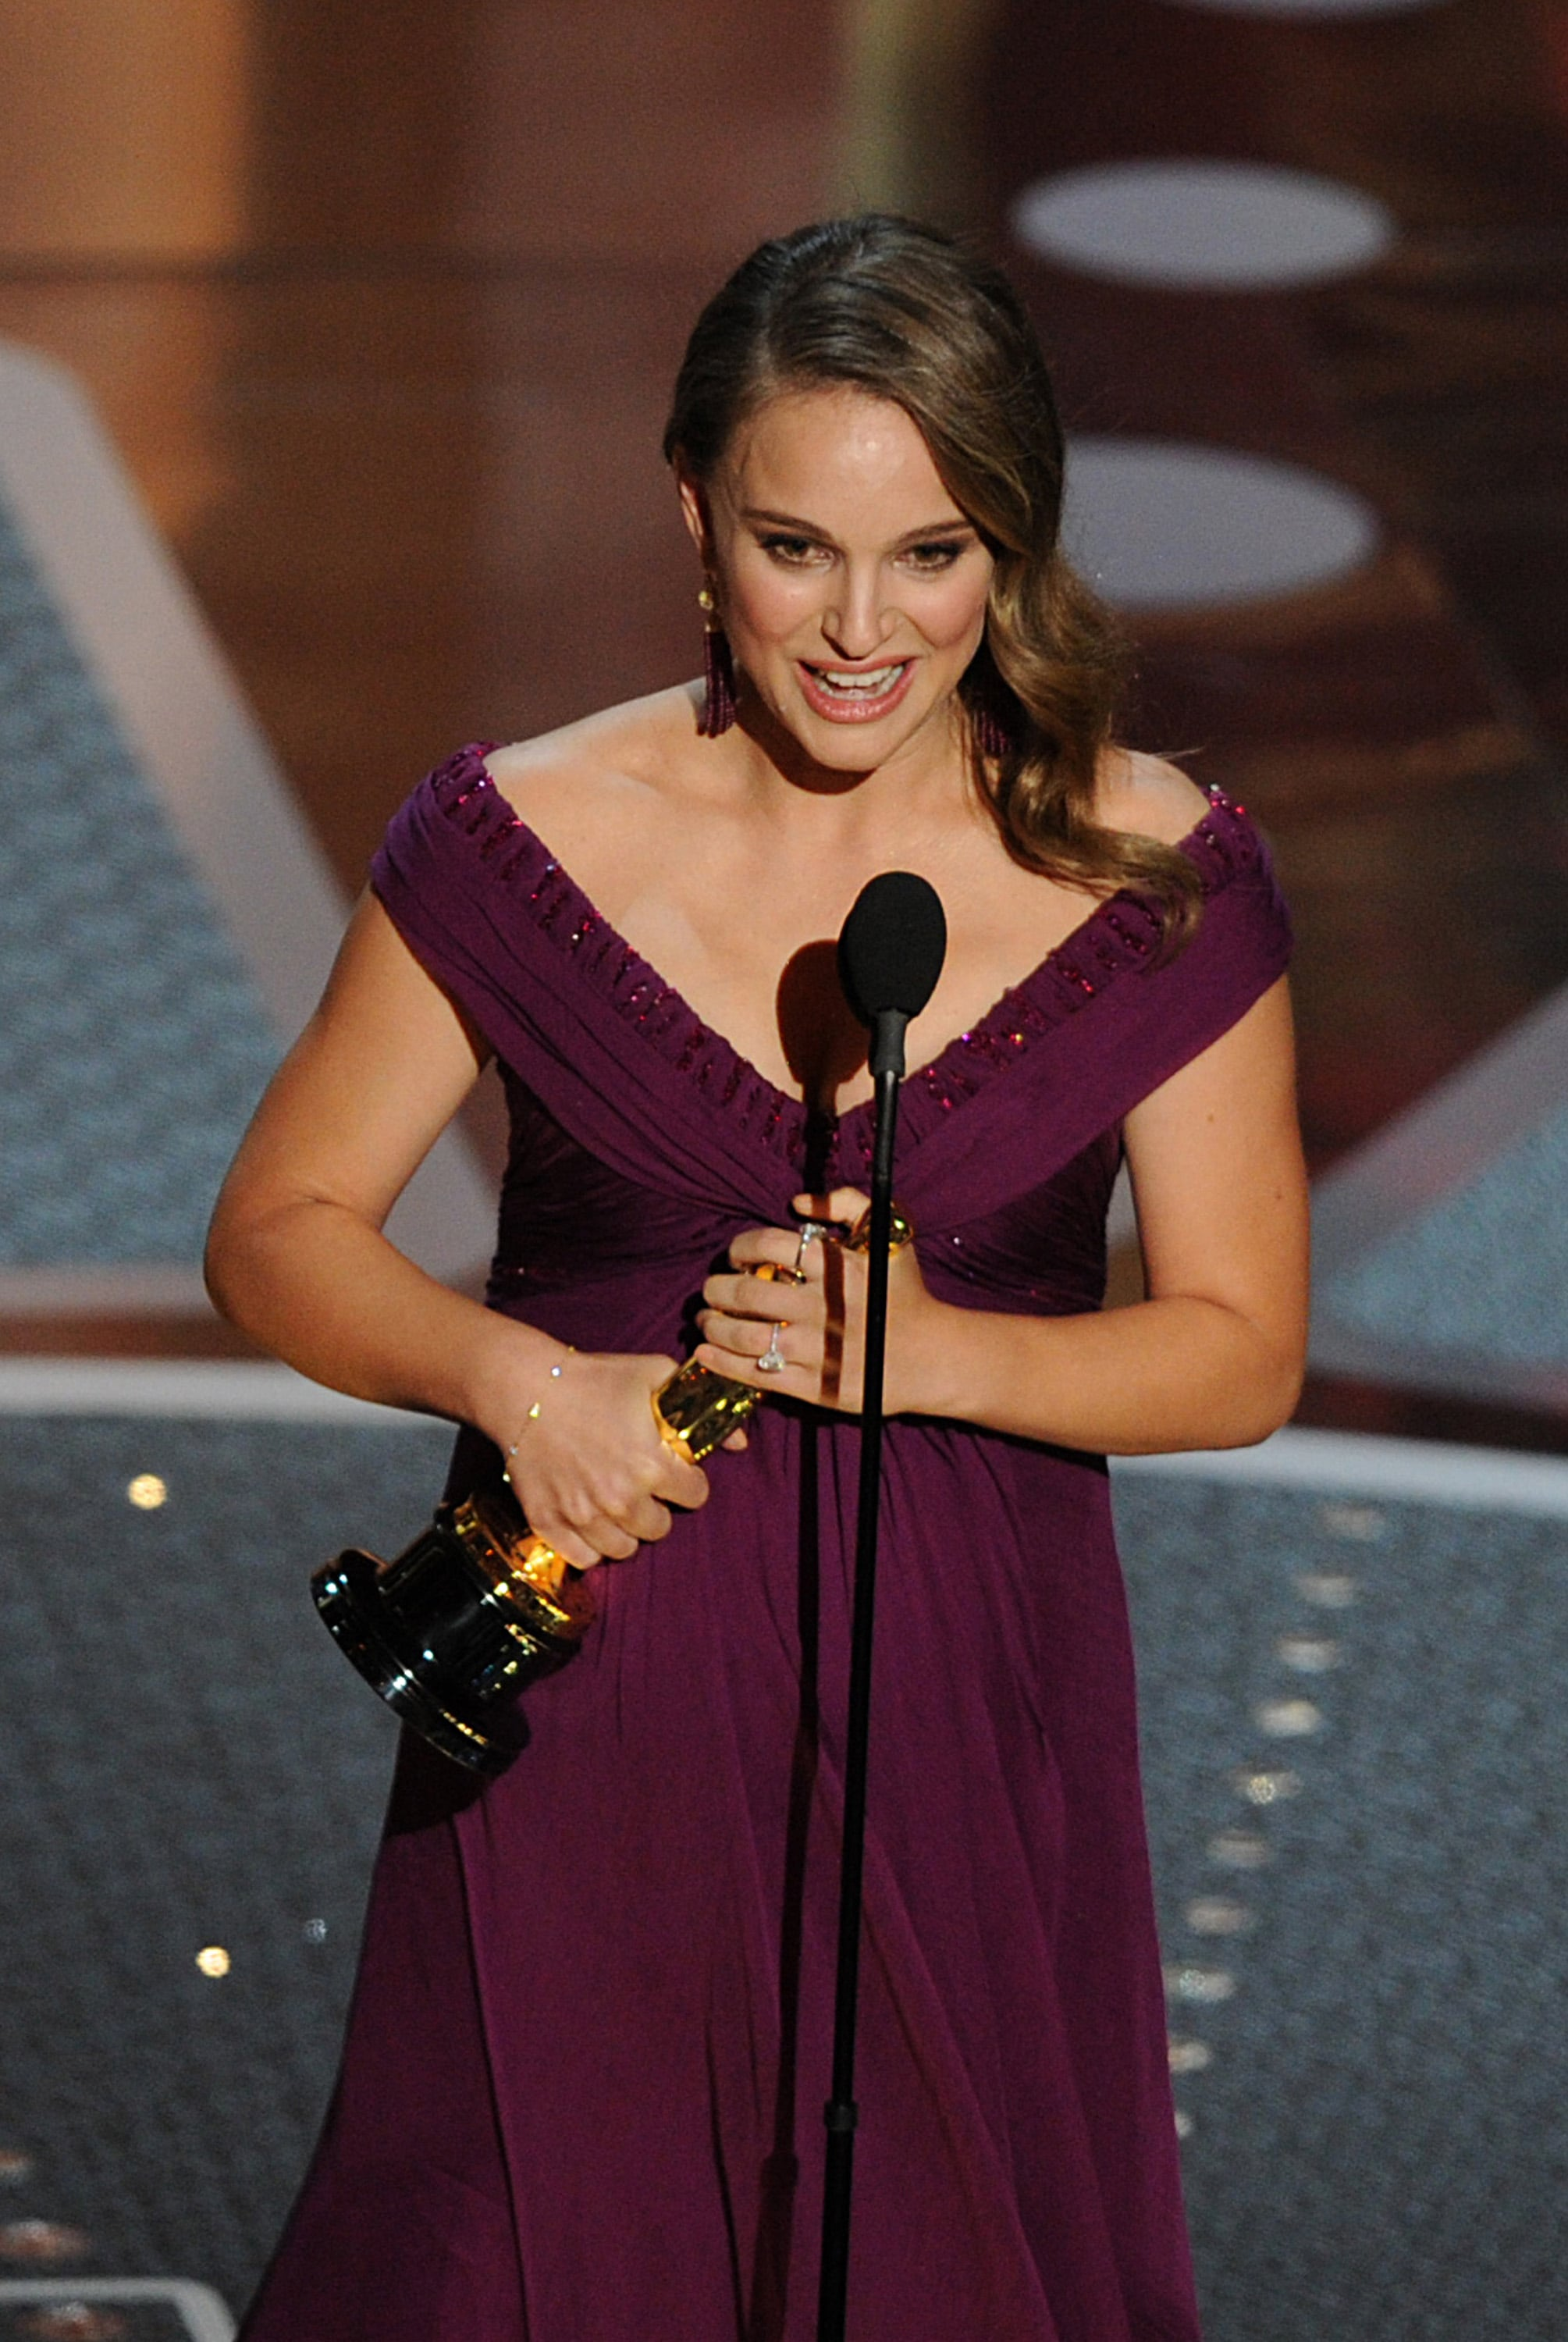 A pregnant Natalie Portman accepted her best actress award for Black Swan in 2011.